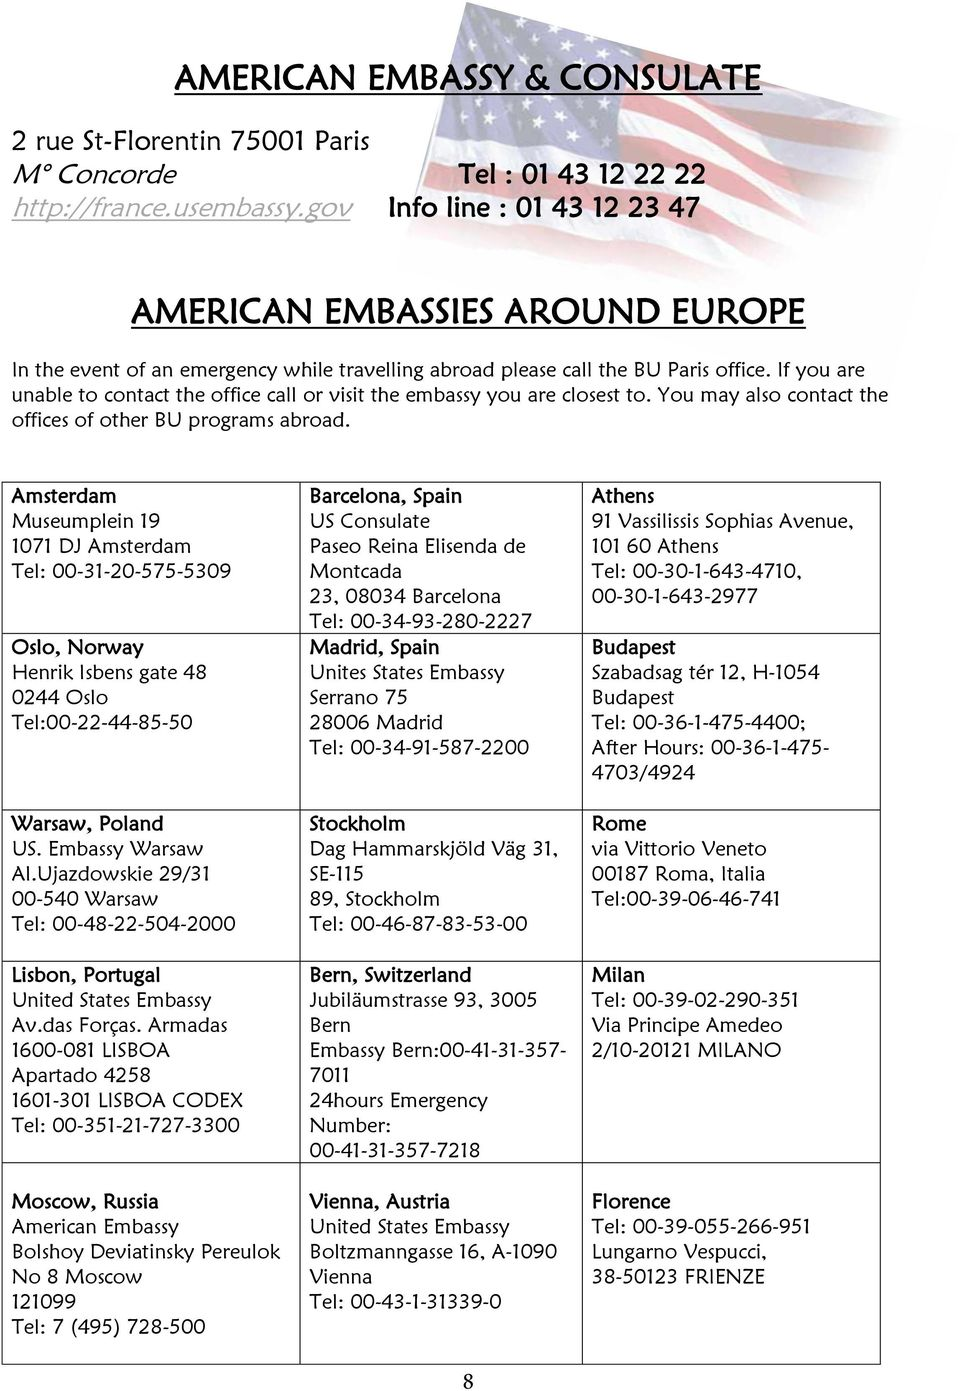 If you are unable to contact the office call or visit the embassy you are closest to. You may also contact the offices of other BU programs abroad.